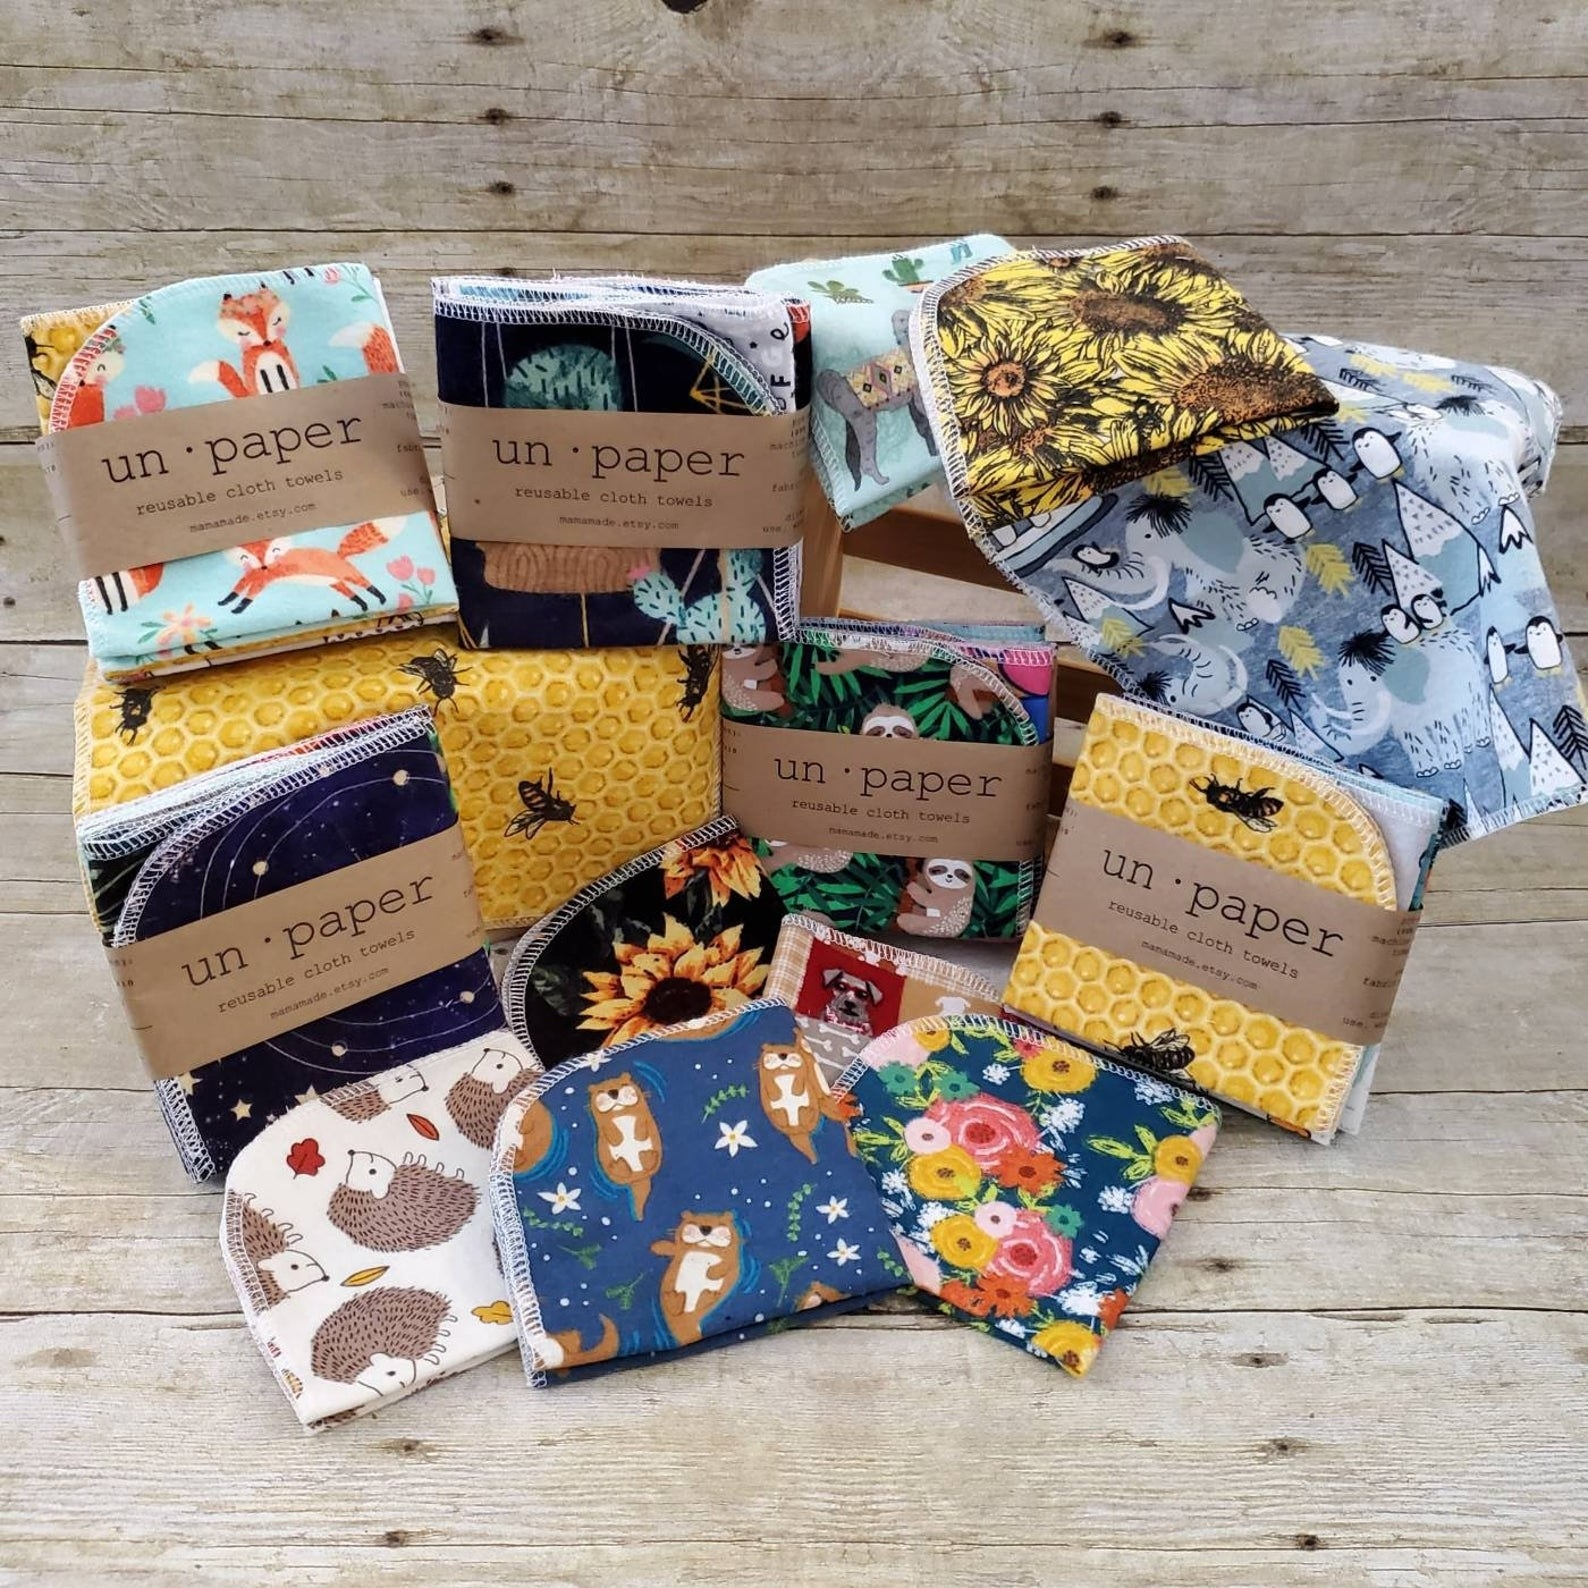 The reusable cloth napkins in a variety of prints and colors